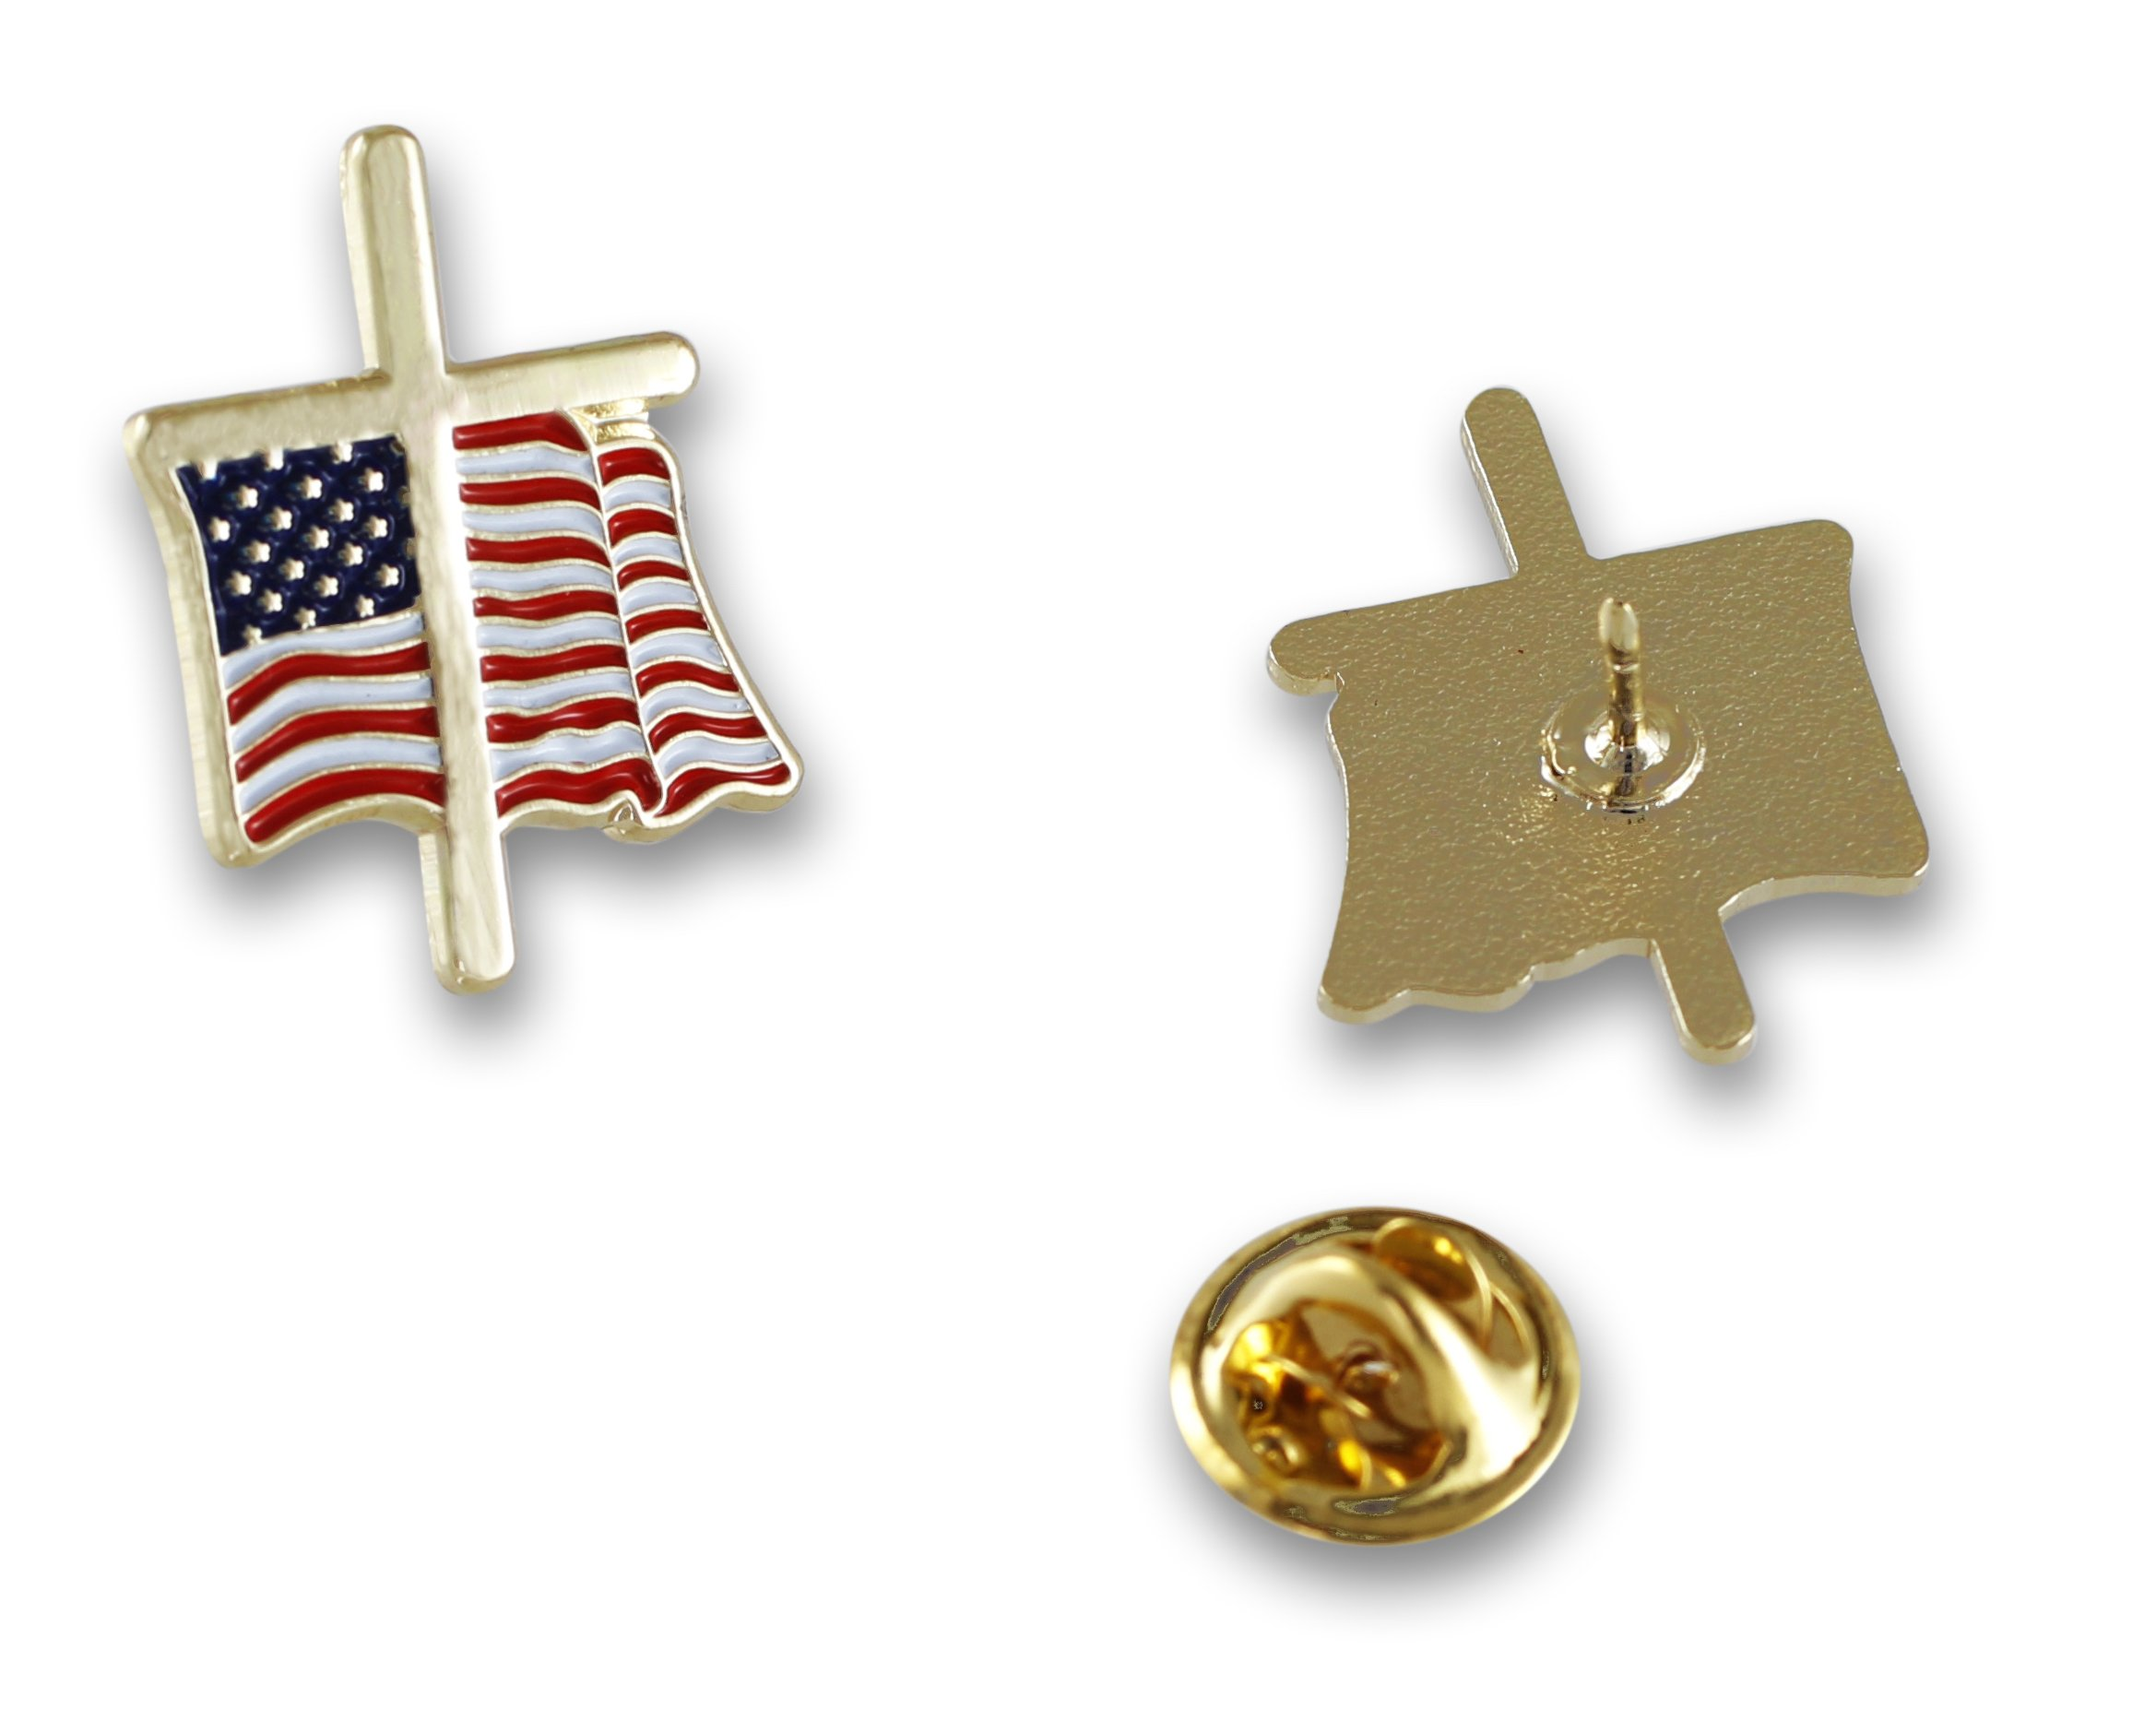 American Flag with Religious Cross Lapel Pin (50 Pins) by Forge (Image #8)